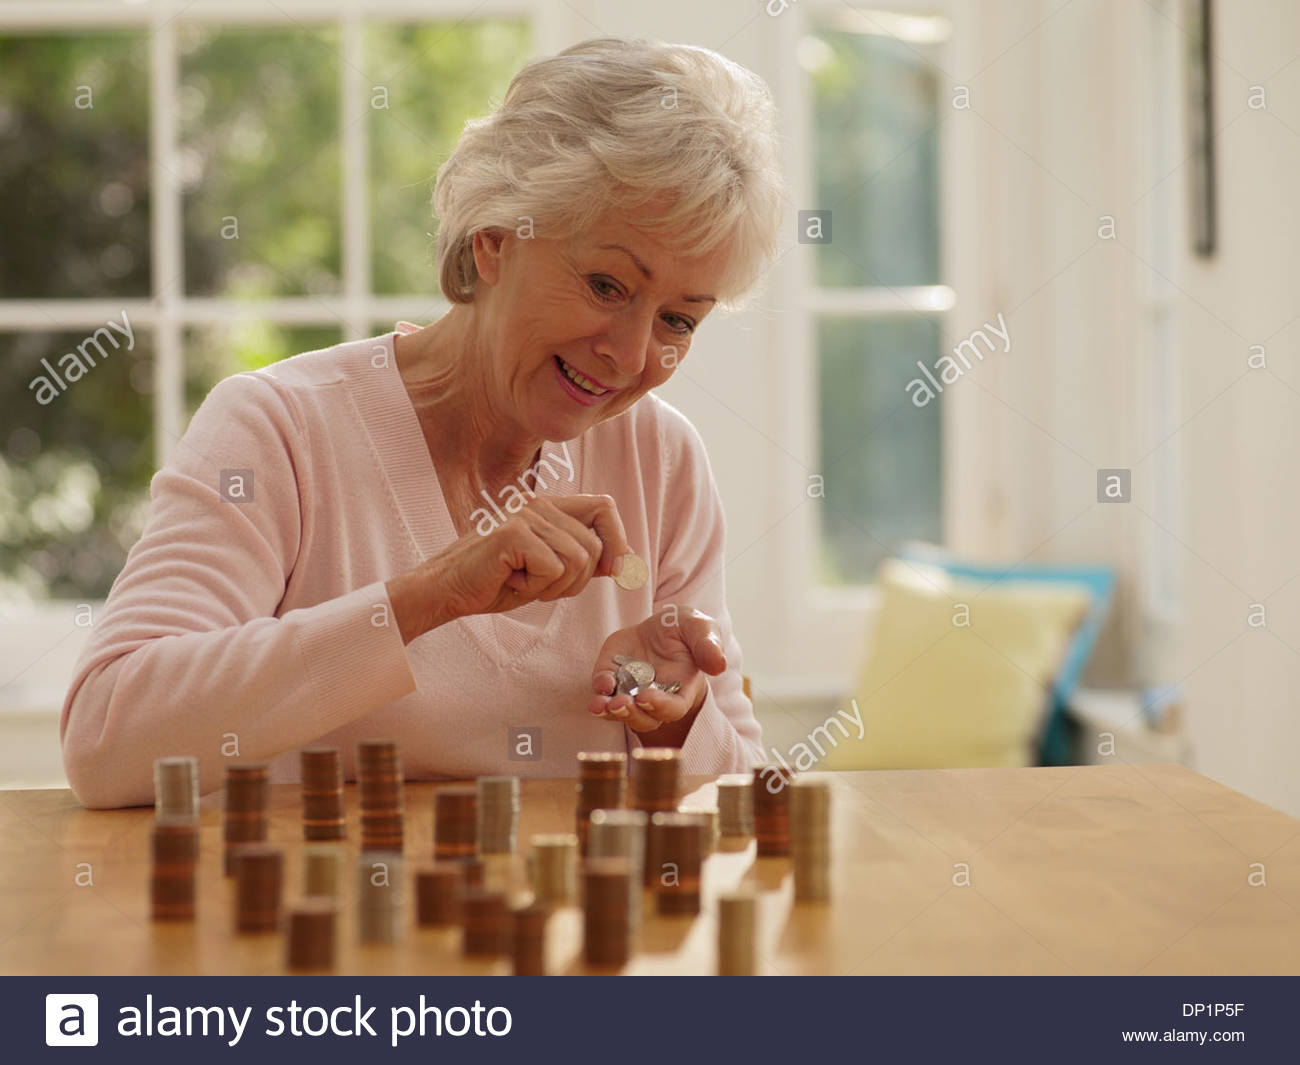 Woman putting coins into stacks - Stock Image